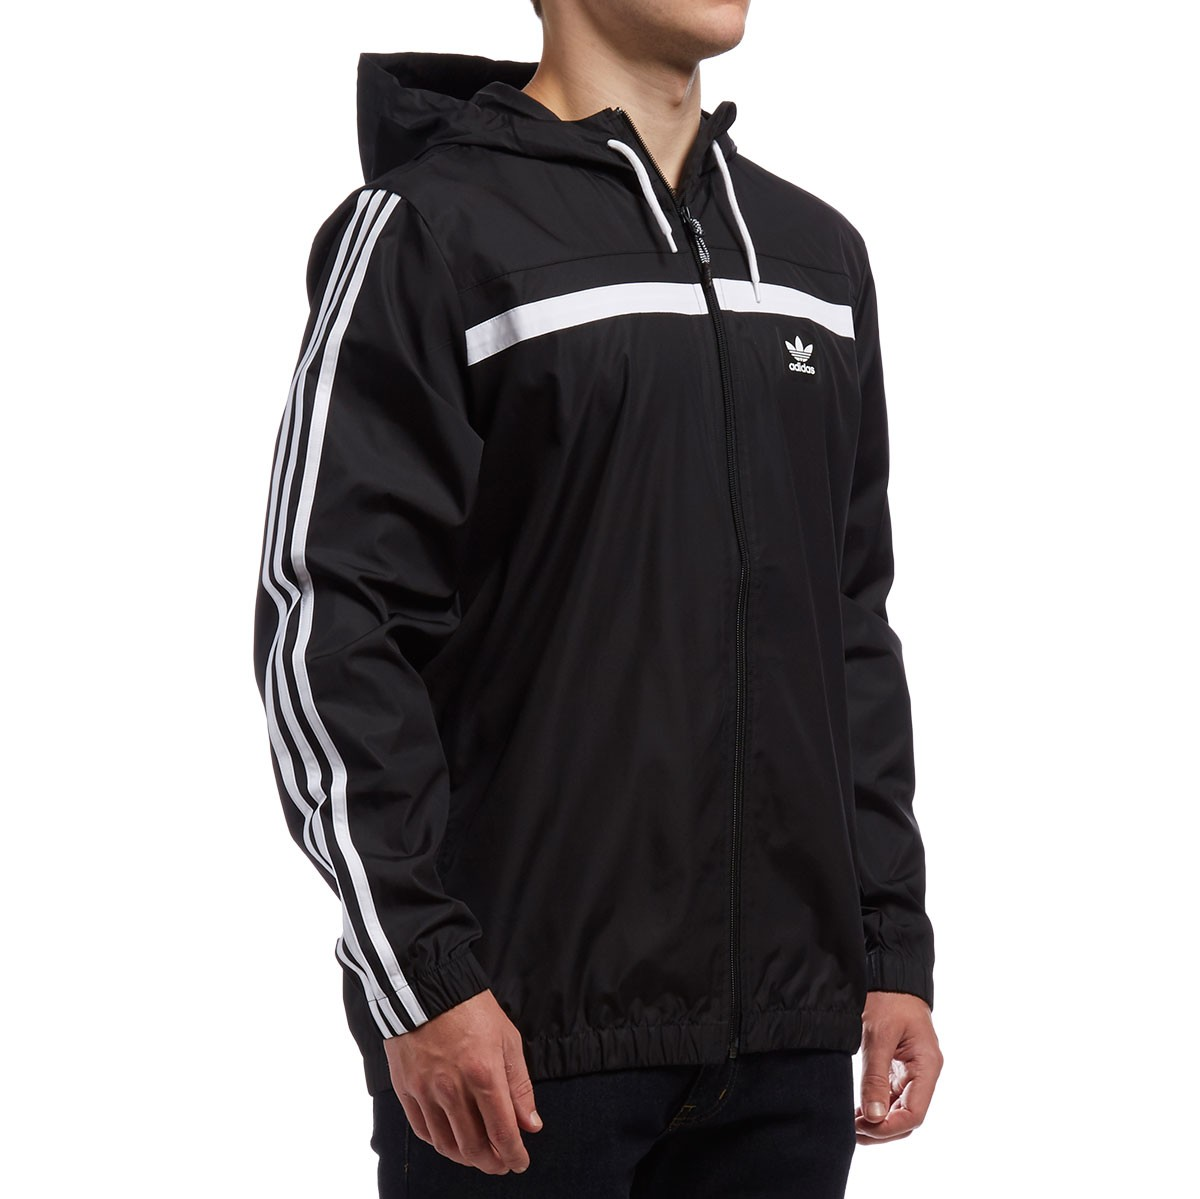 0e03860a5 Adidas Windbreaker 2 Jacket - Black/White